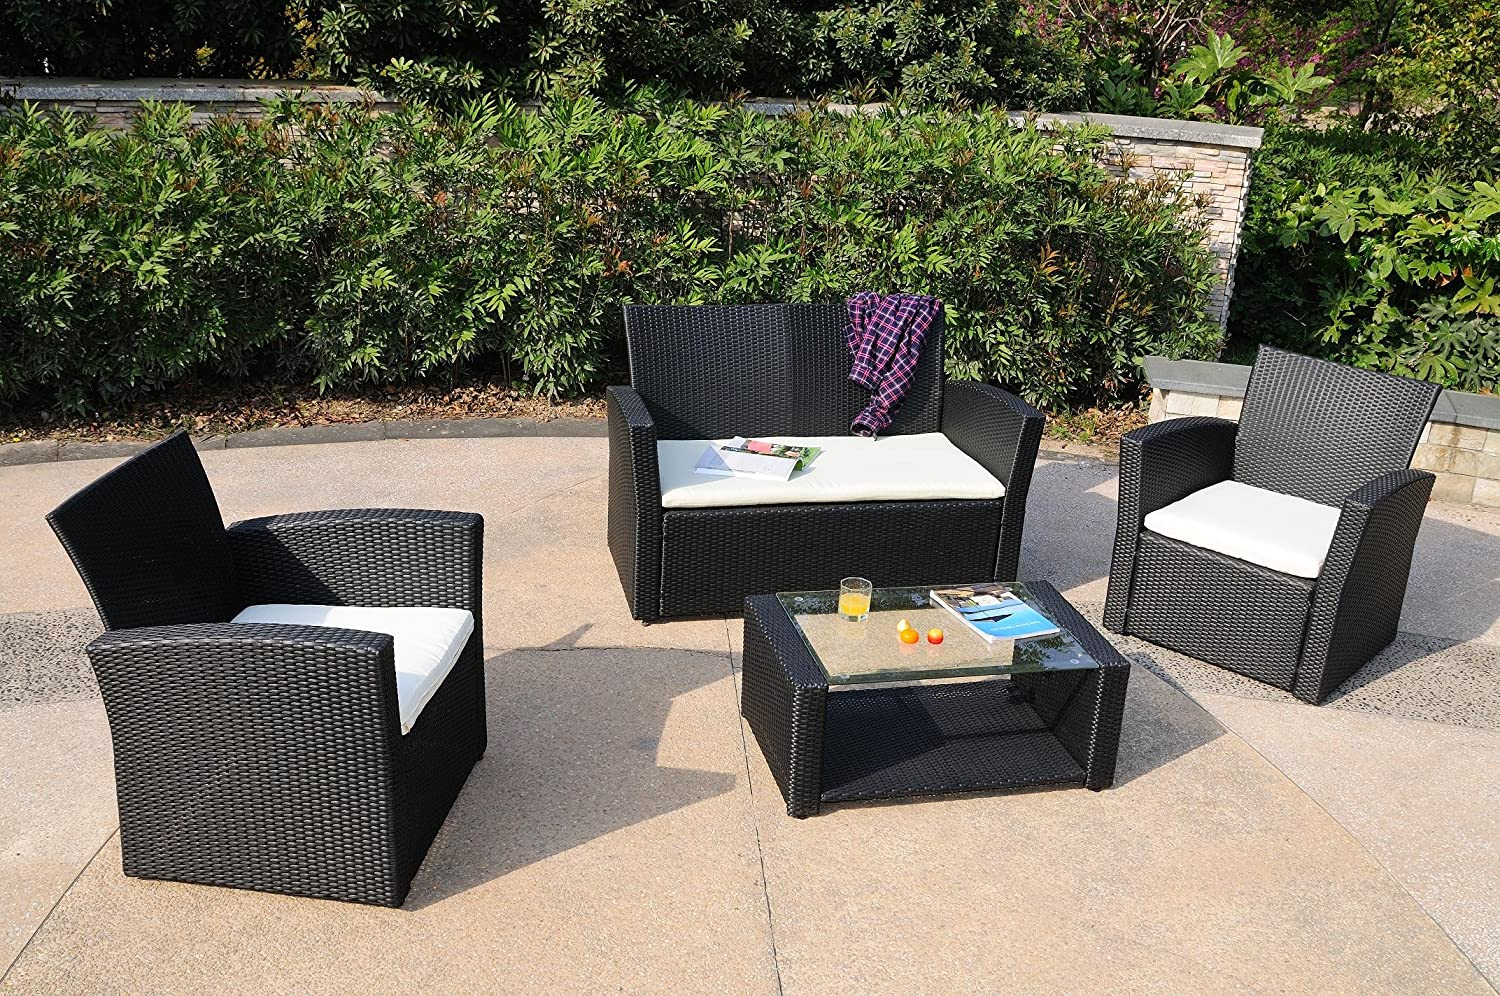 Patio furniture sets clearance patio design ideas for Garden patio furniture sets